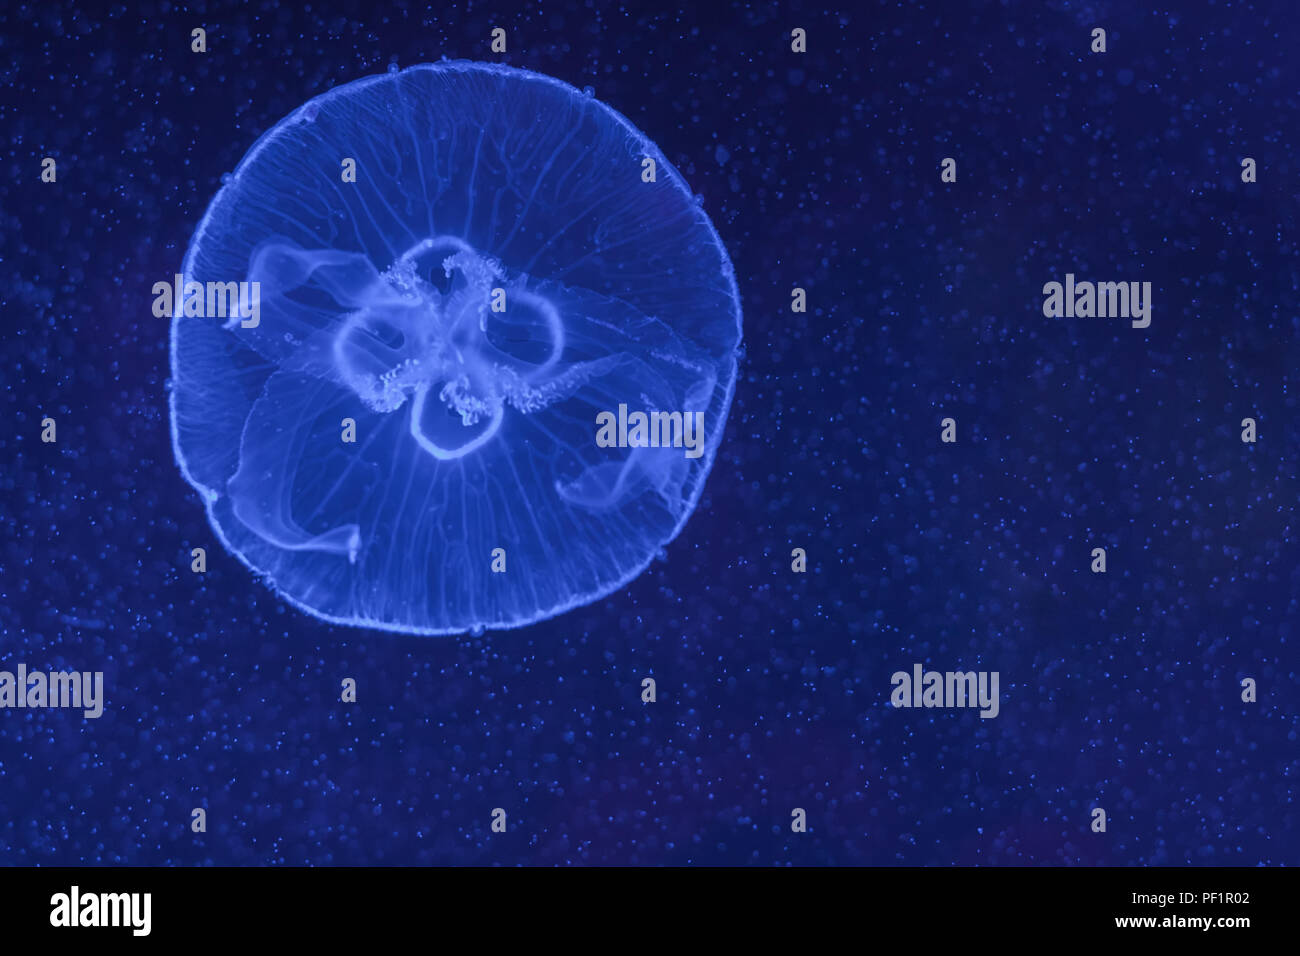 Small Jellyfish Stock Photos & Small Jellyfish Stock Images - Alamy